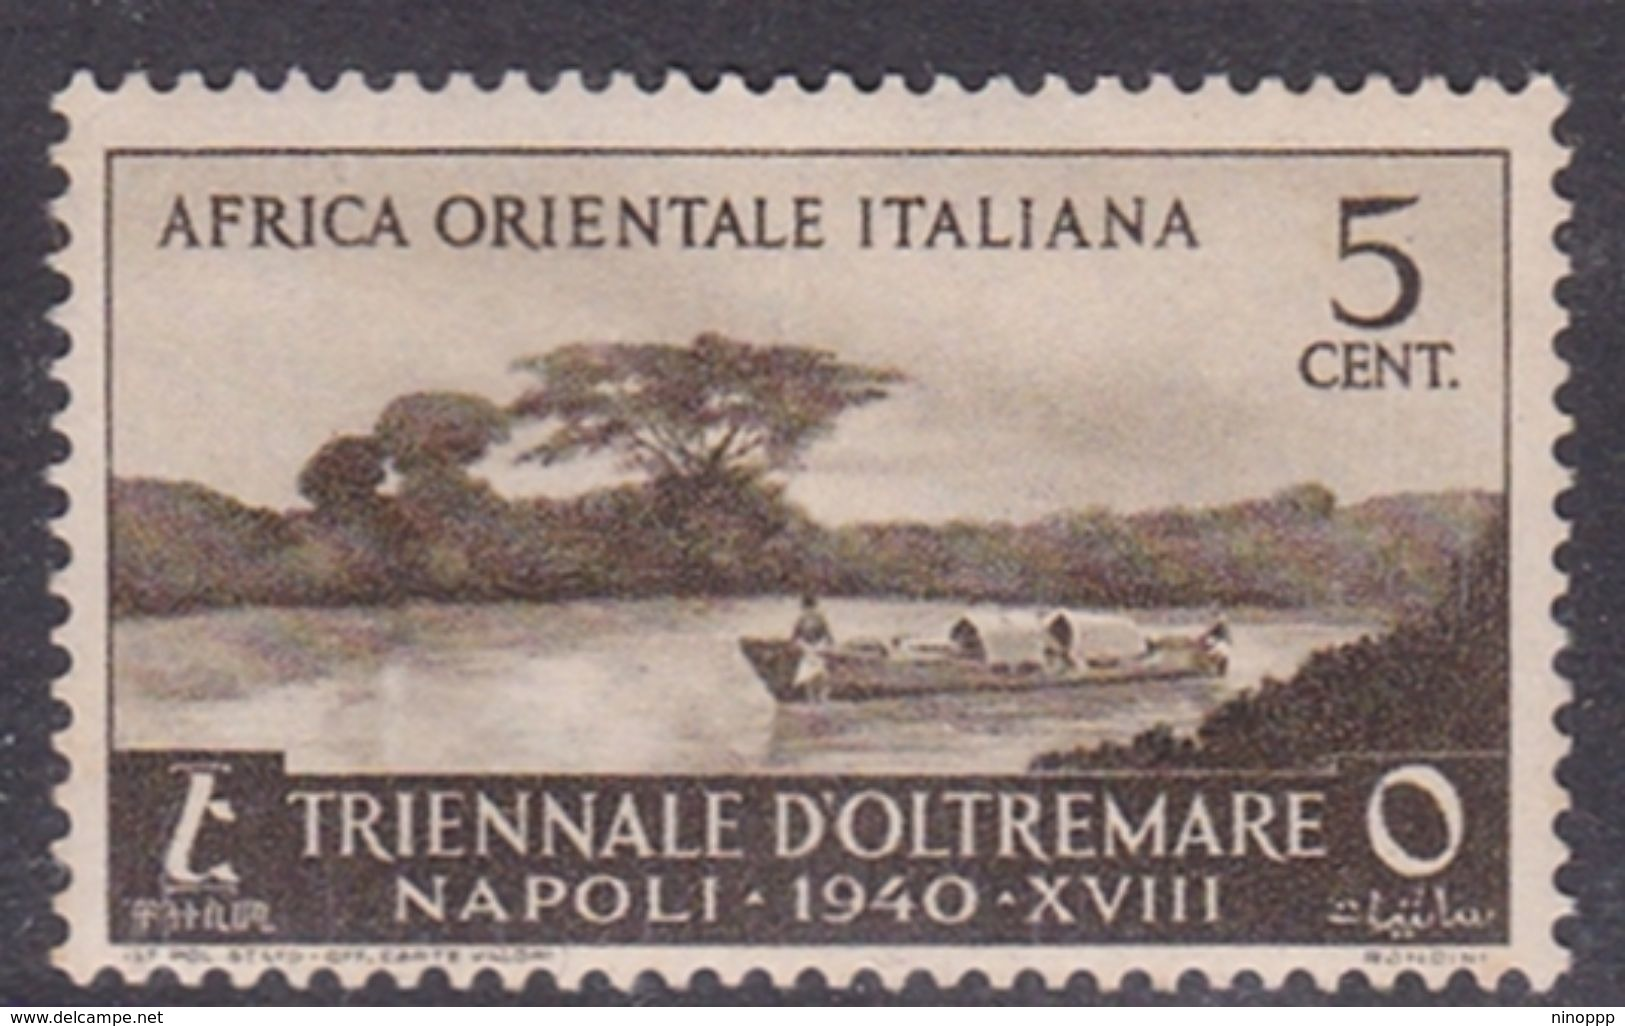 Italy-Colonies And Territories-Italian Eastern Africa S27 1940 First Triennial Overseas Exposition 5c Brown MH - Italy